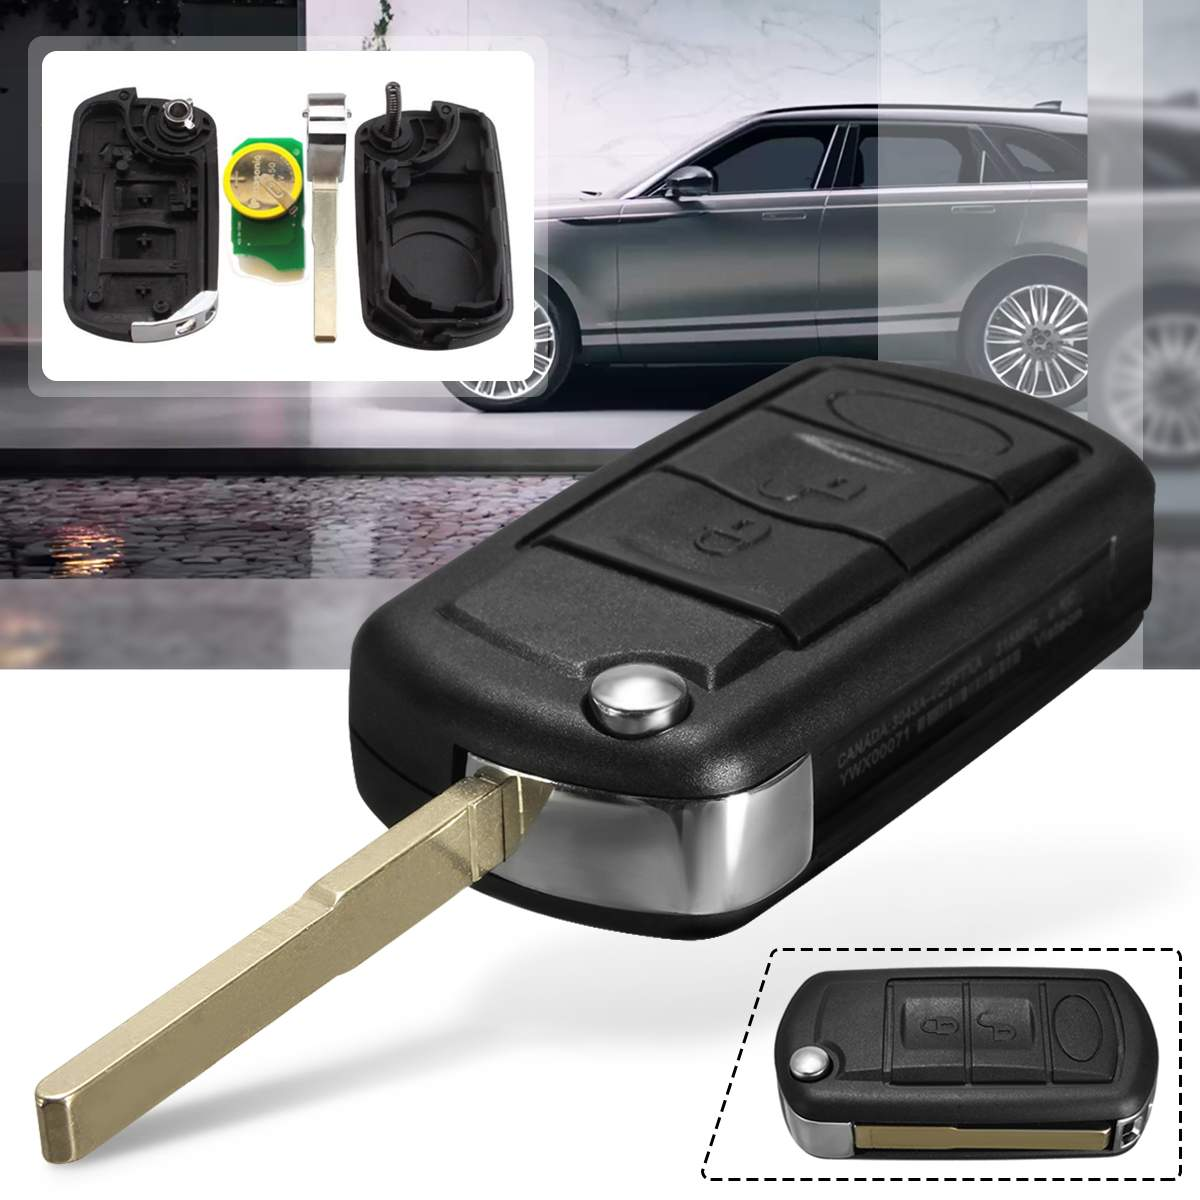 433MHz 3 button Folding Remote Key Fob for Land Rover Range Rover L322 HSE with battery & 7936/46 chip YWX000061 LR088260433MHz 3 button Folding Remote Key Fob for Land Rover Range Rover L322 HSE with battery & 7936/46 chip YWX000061 LR088260